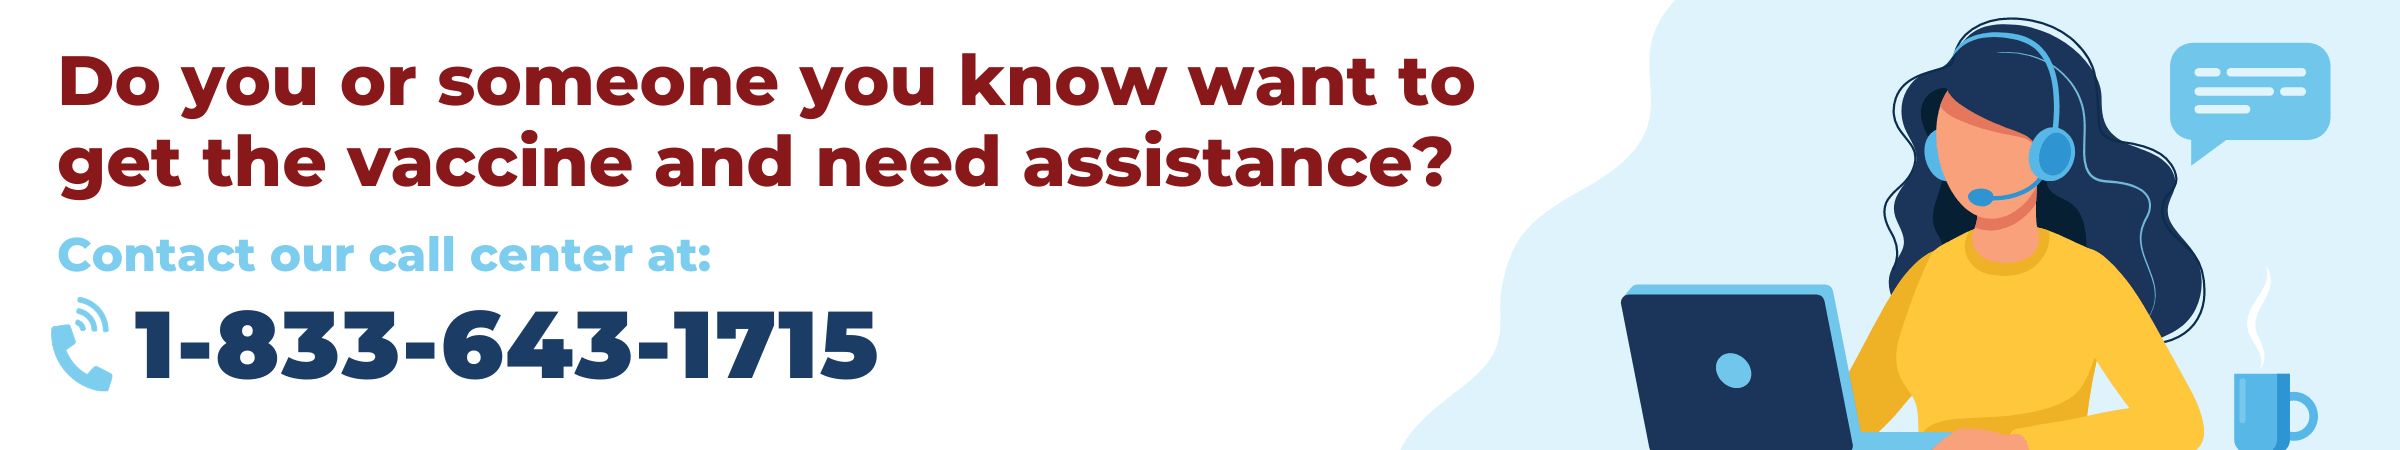 Do you or someone you know want to get the vaccine and need assistance? Contact our call center at 1-833-643-1715